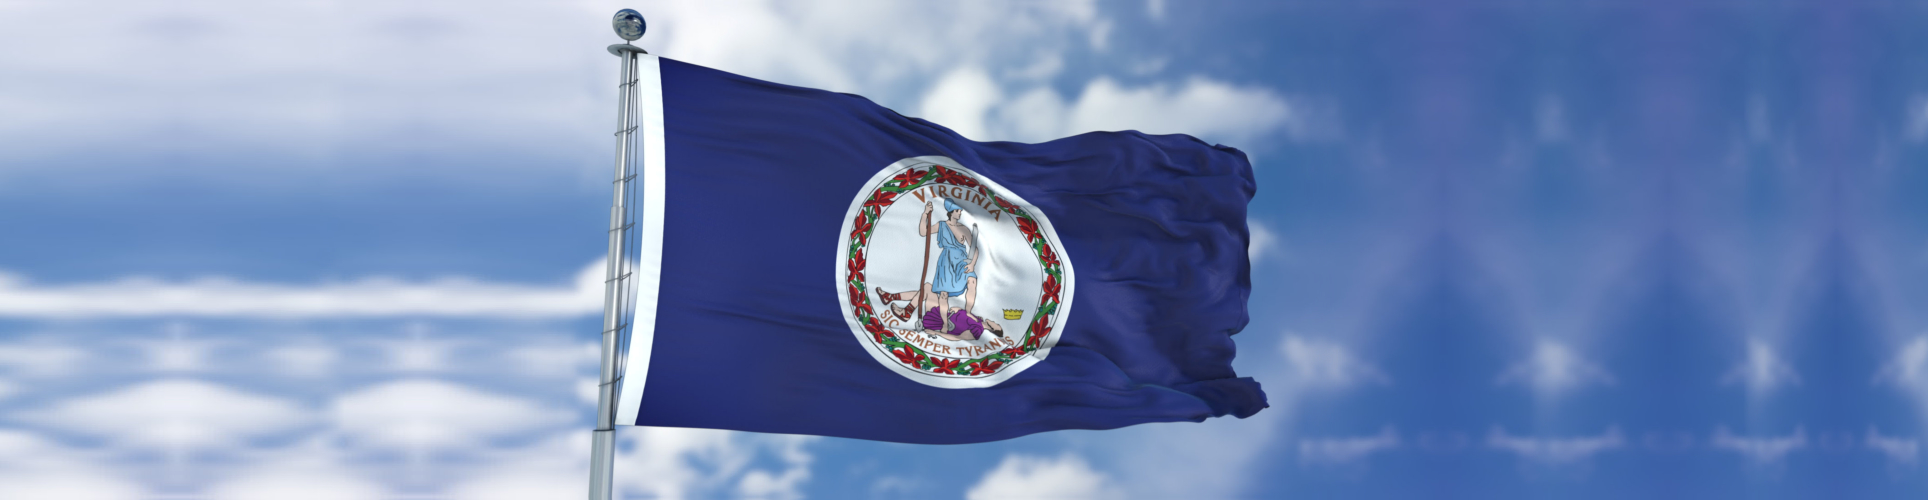 Virginia Waving Flag